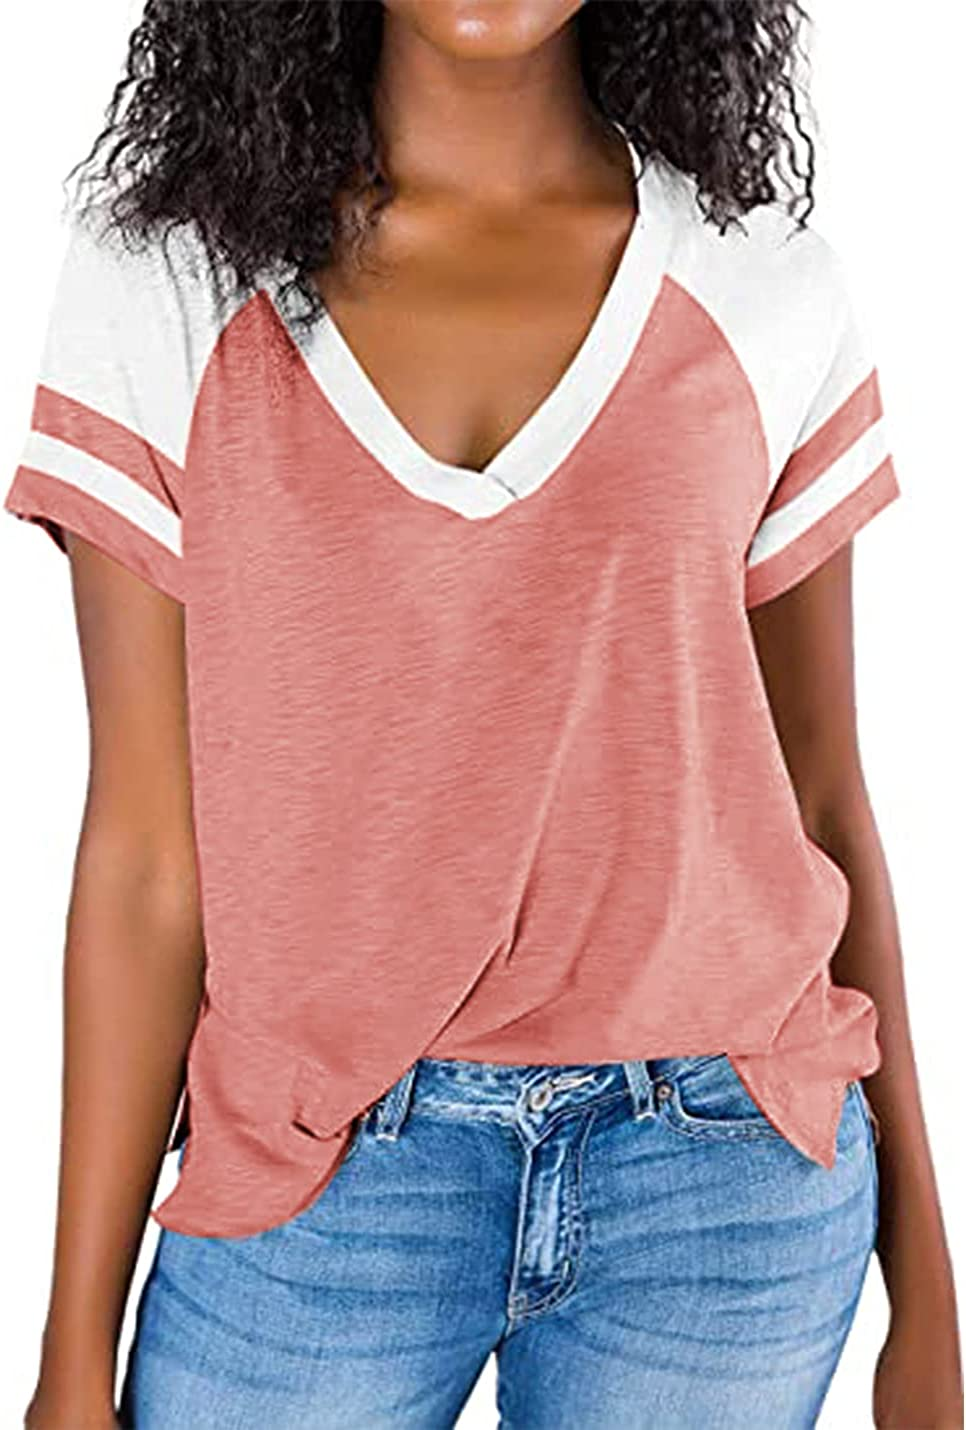 Womens T Shirts V Neck Short Sleeve Casual Summer Shirts Tunic Tops Side Split Loose Fit Workout Plain T Shirt